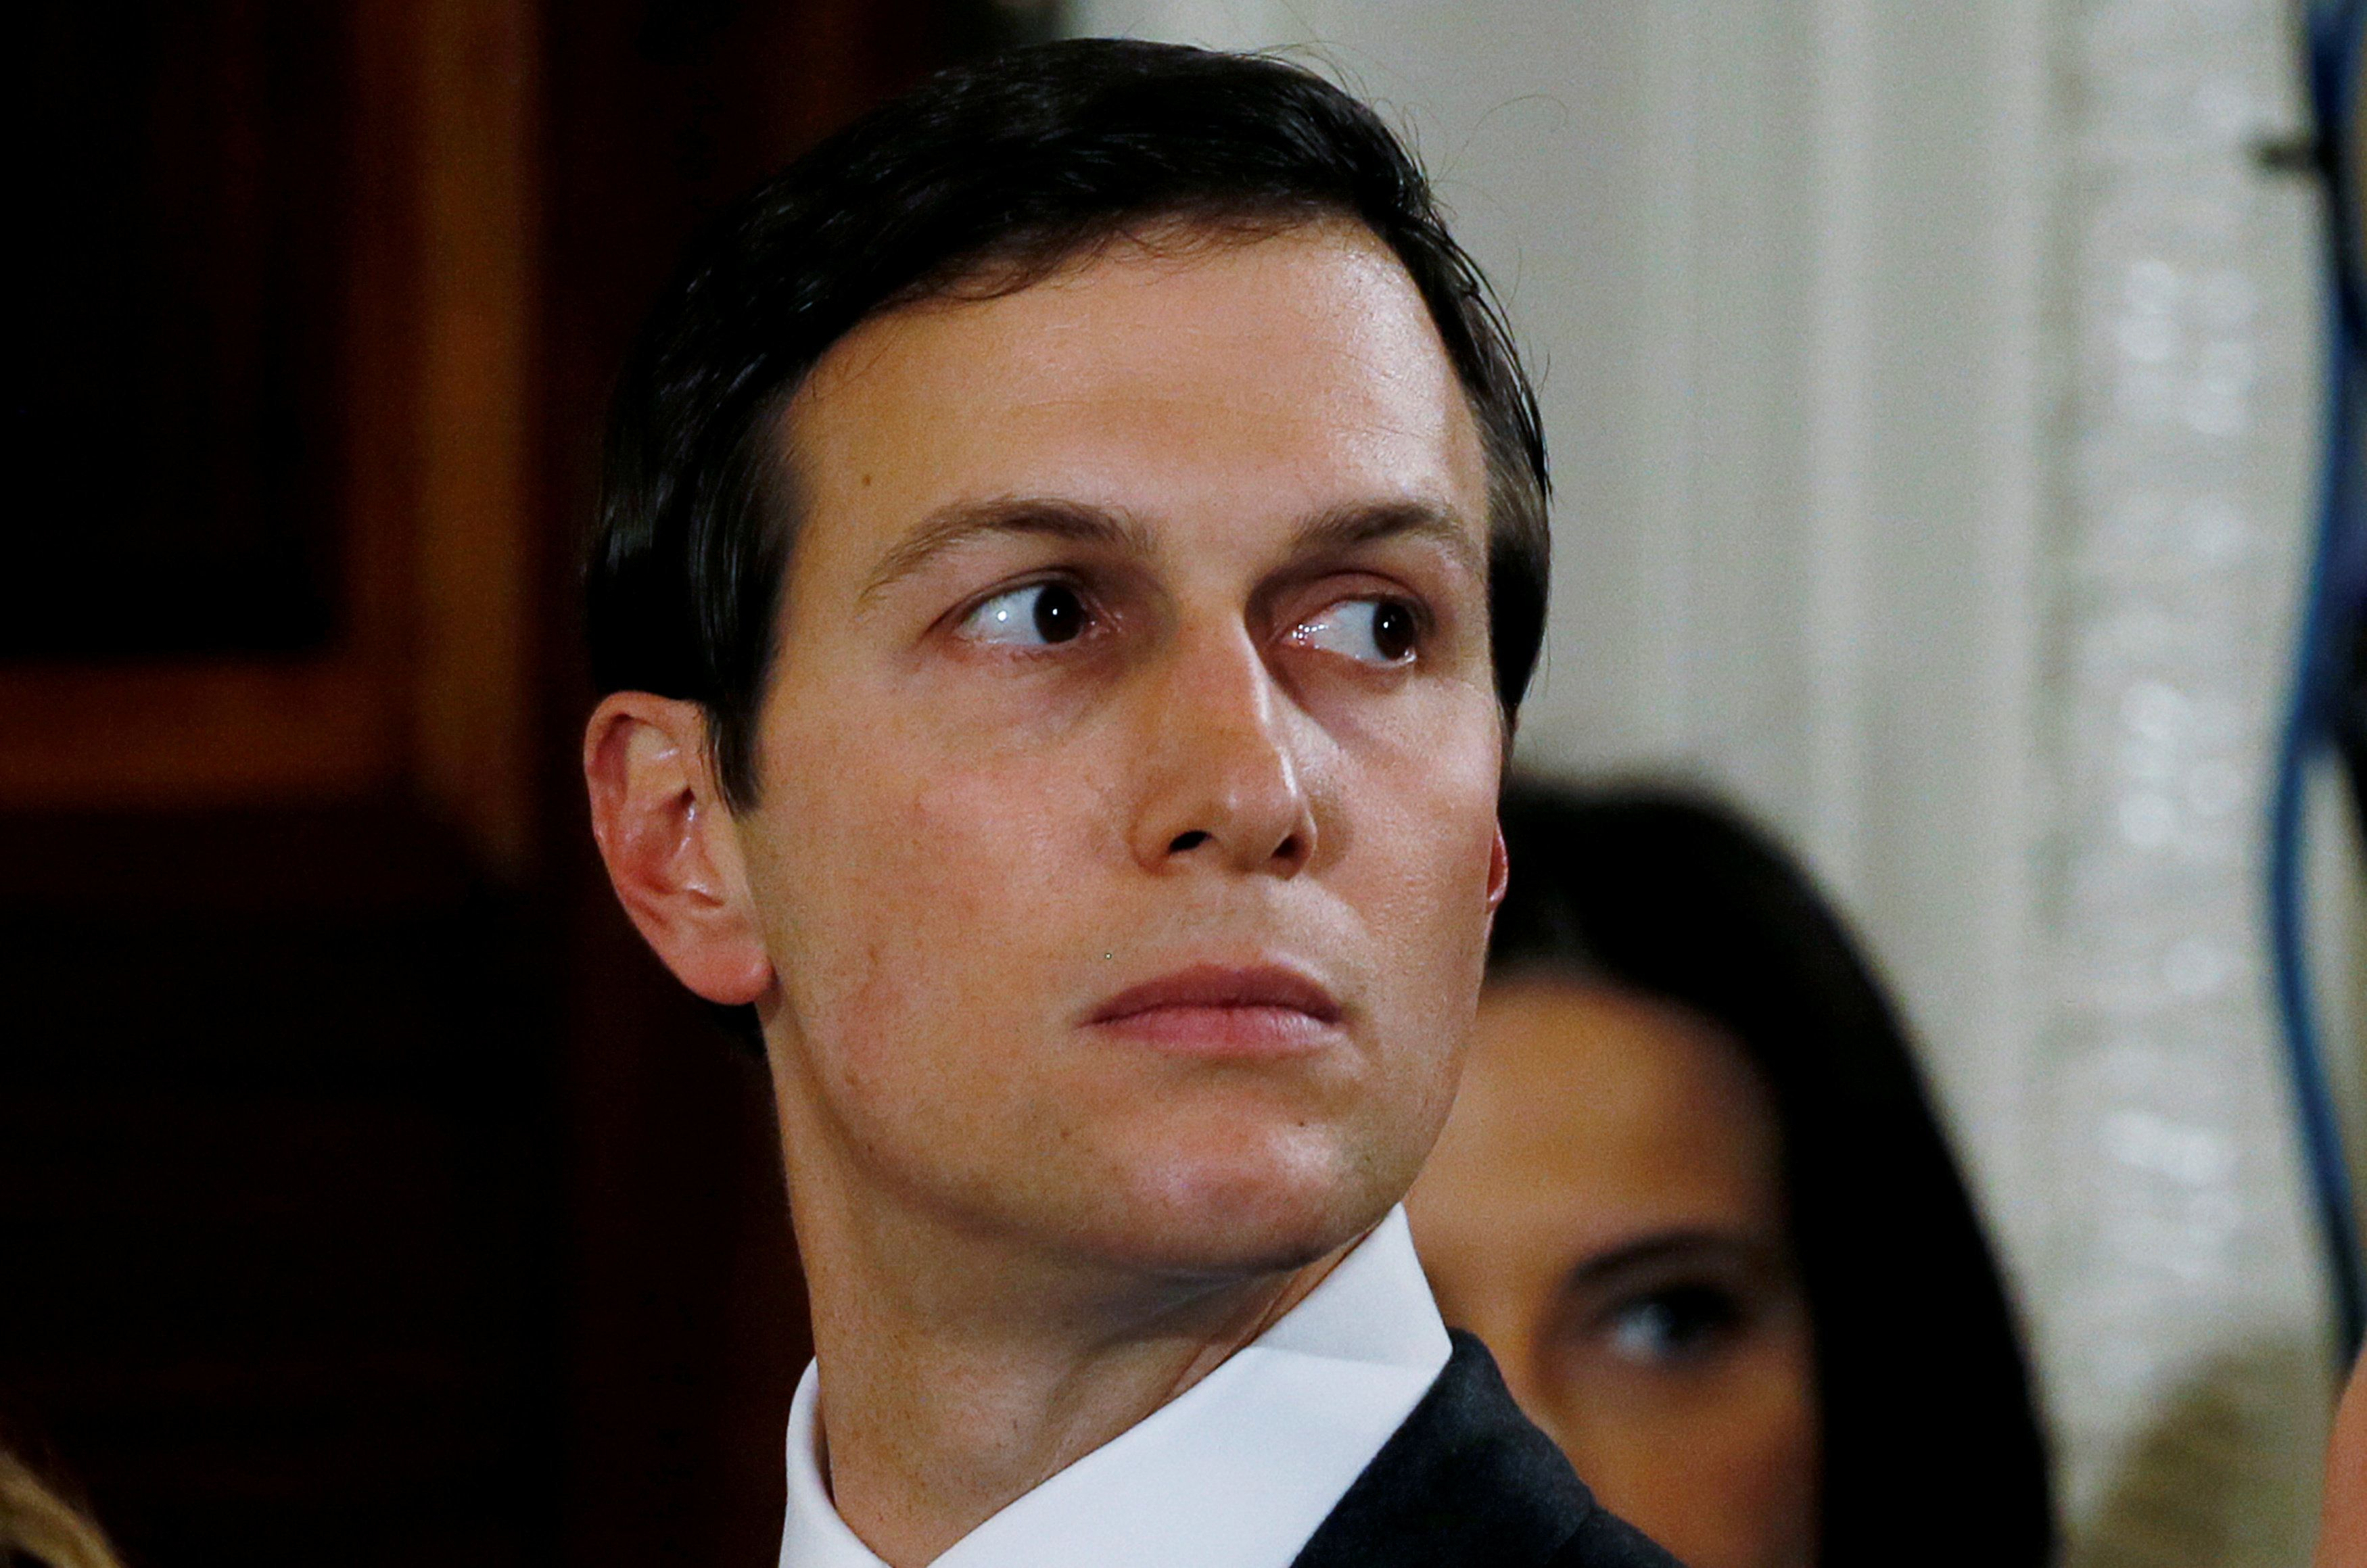 Report: Deutsche Bank Flags 'Suspicious' Kushner Company Transactions